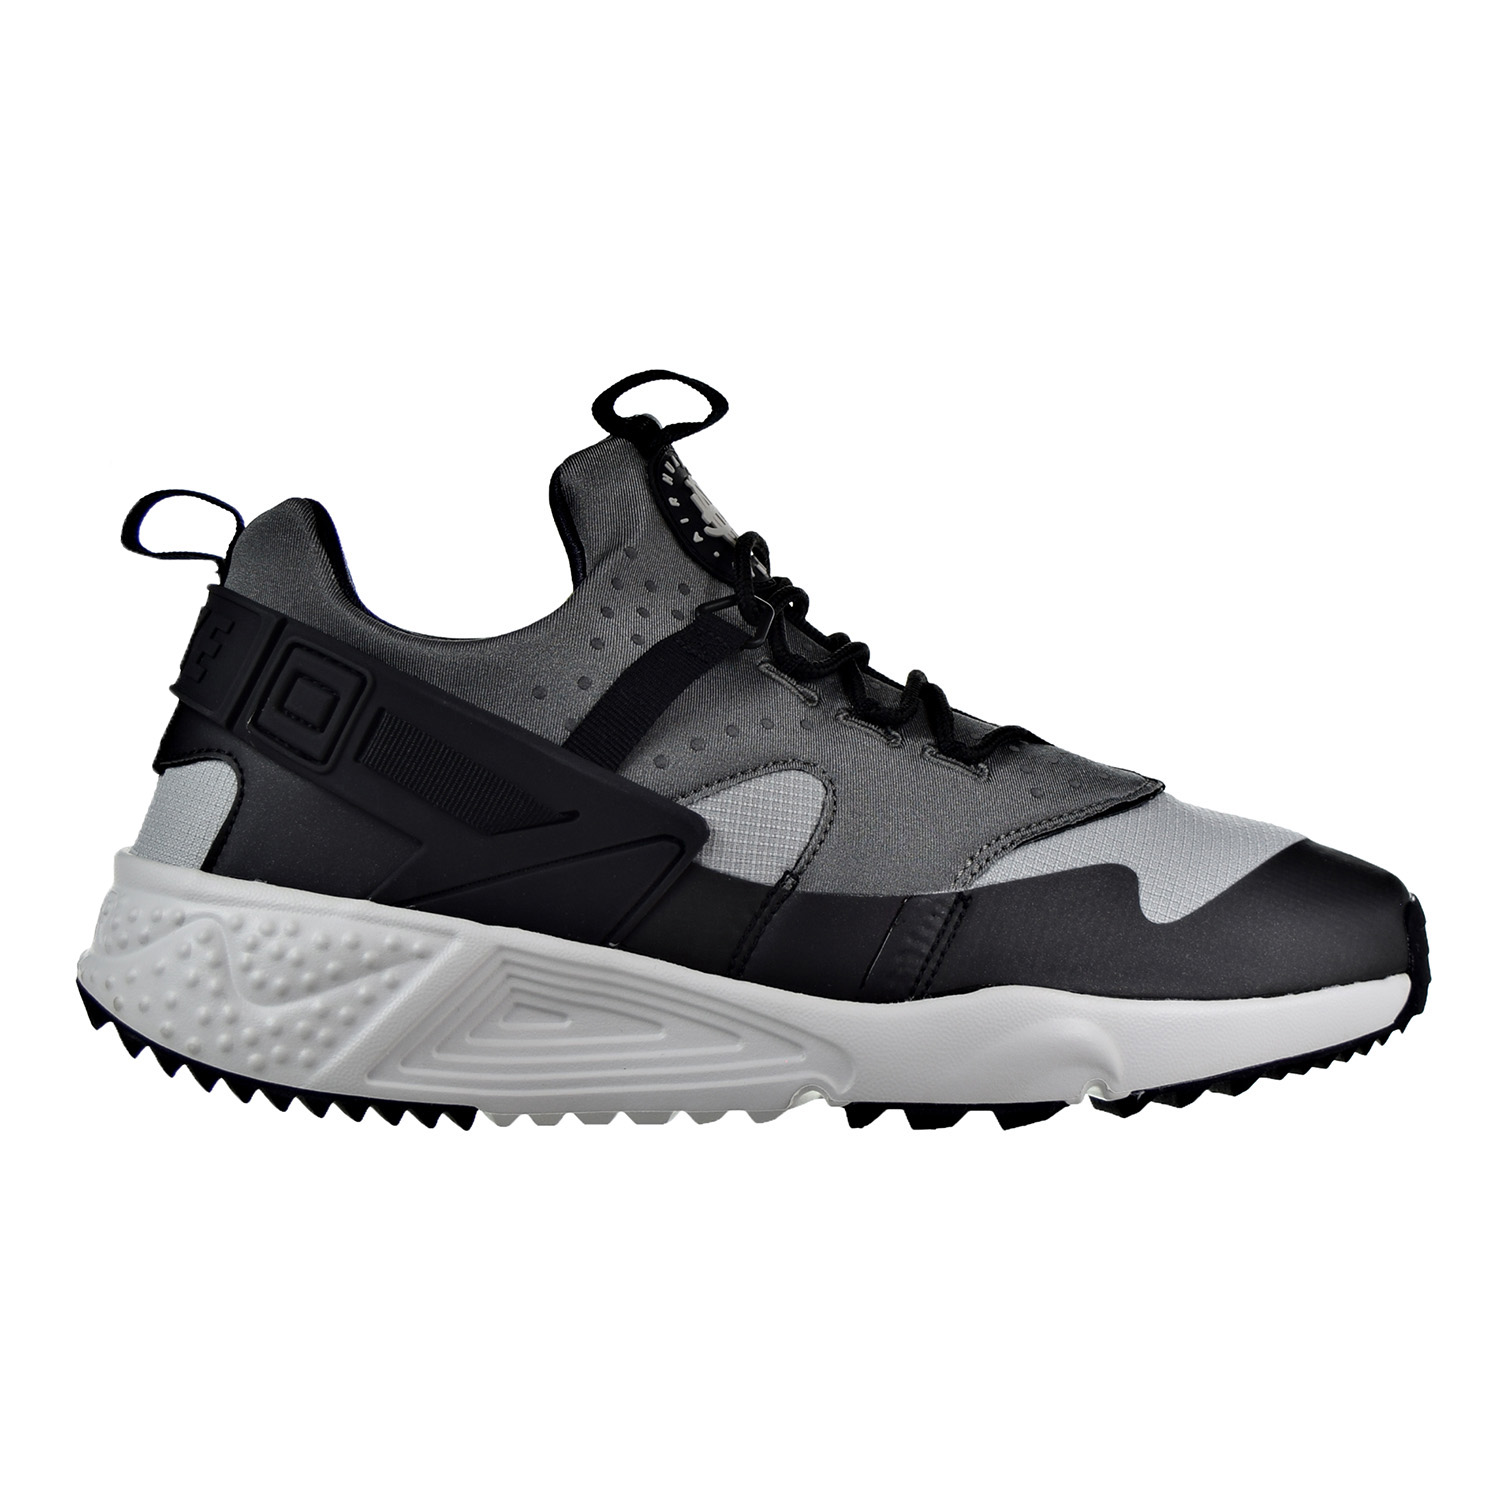 buy online 36106 4a9f3 Details about Nike Air Huarache Utility Men s Shoes Base Grey Light Ash  Grey 806807-003